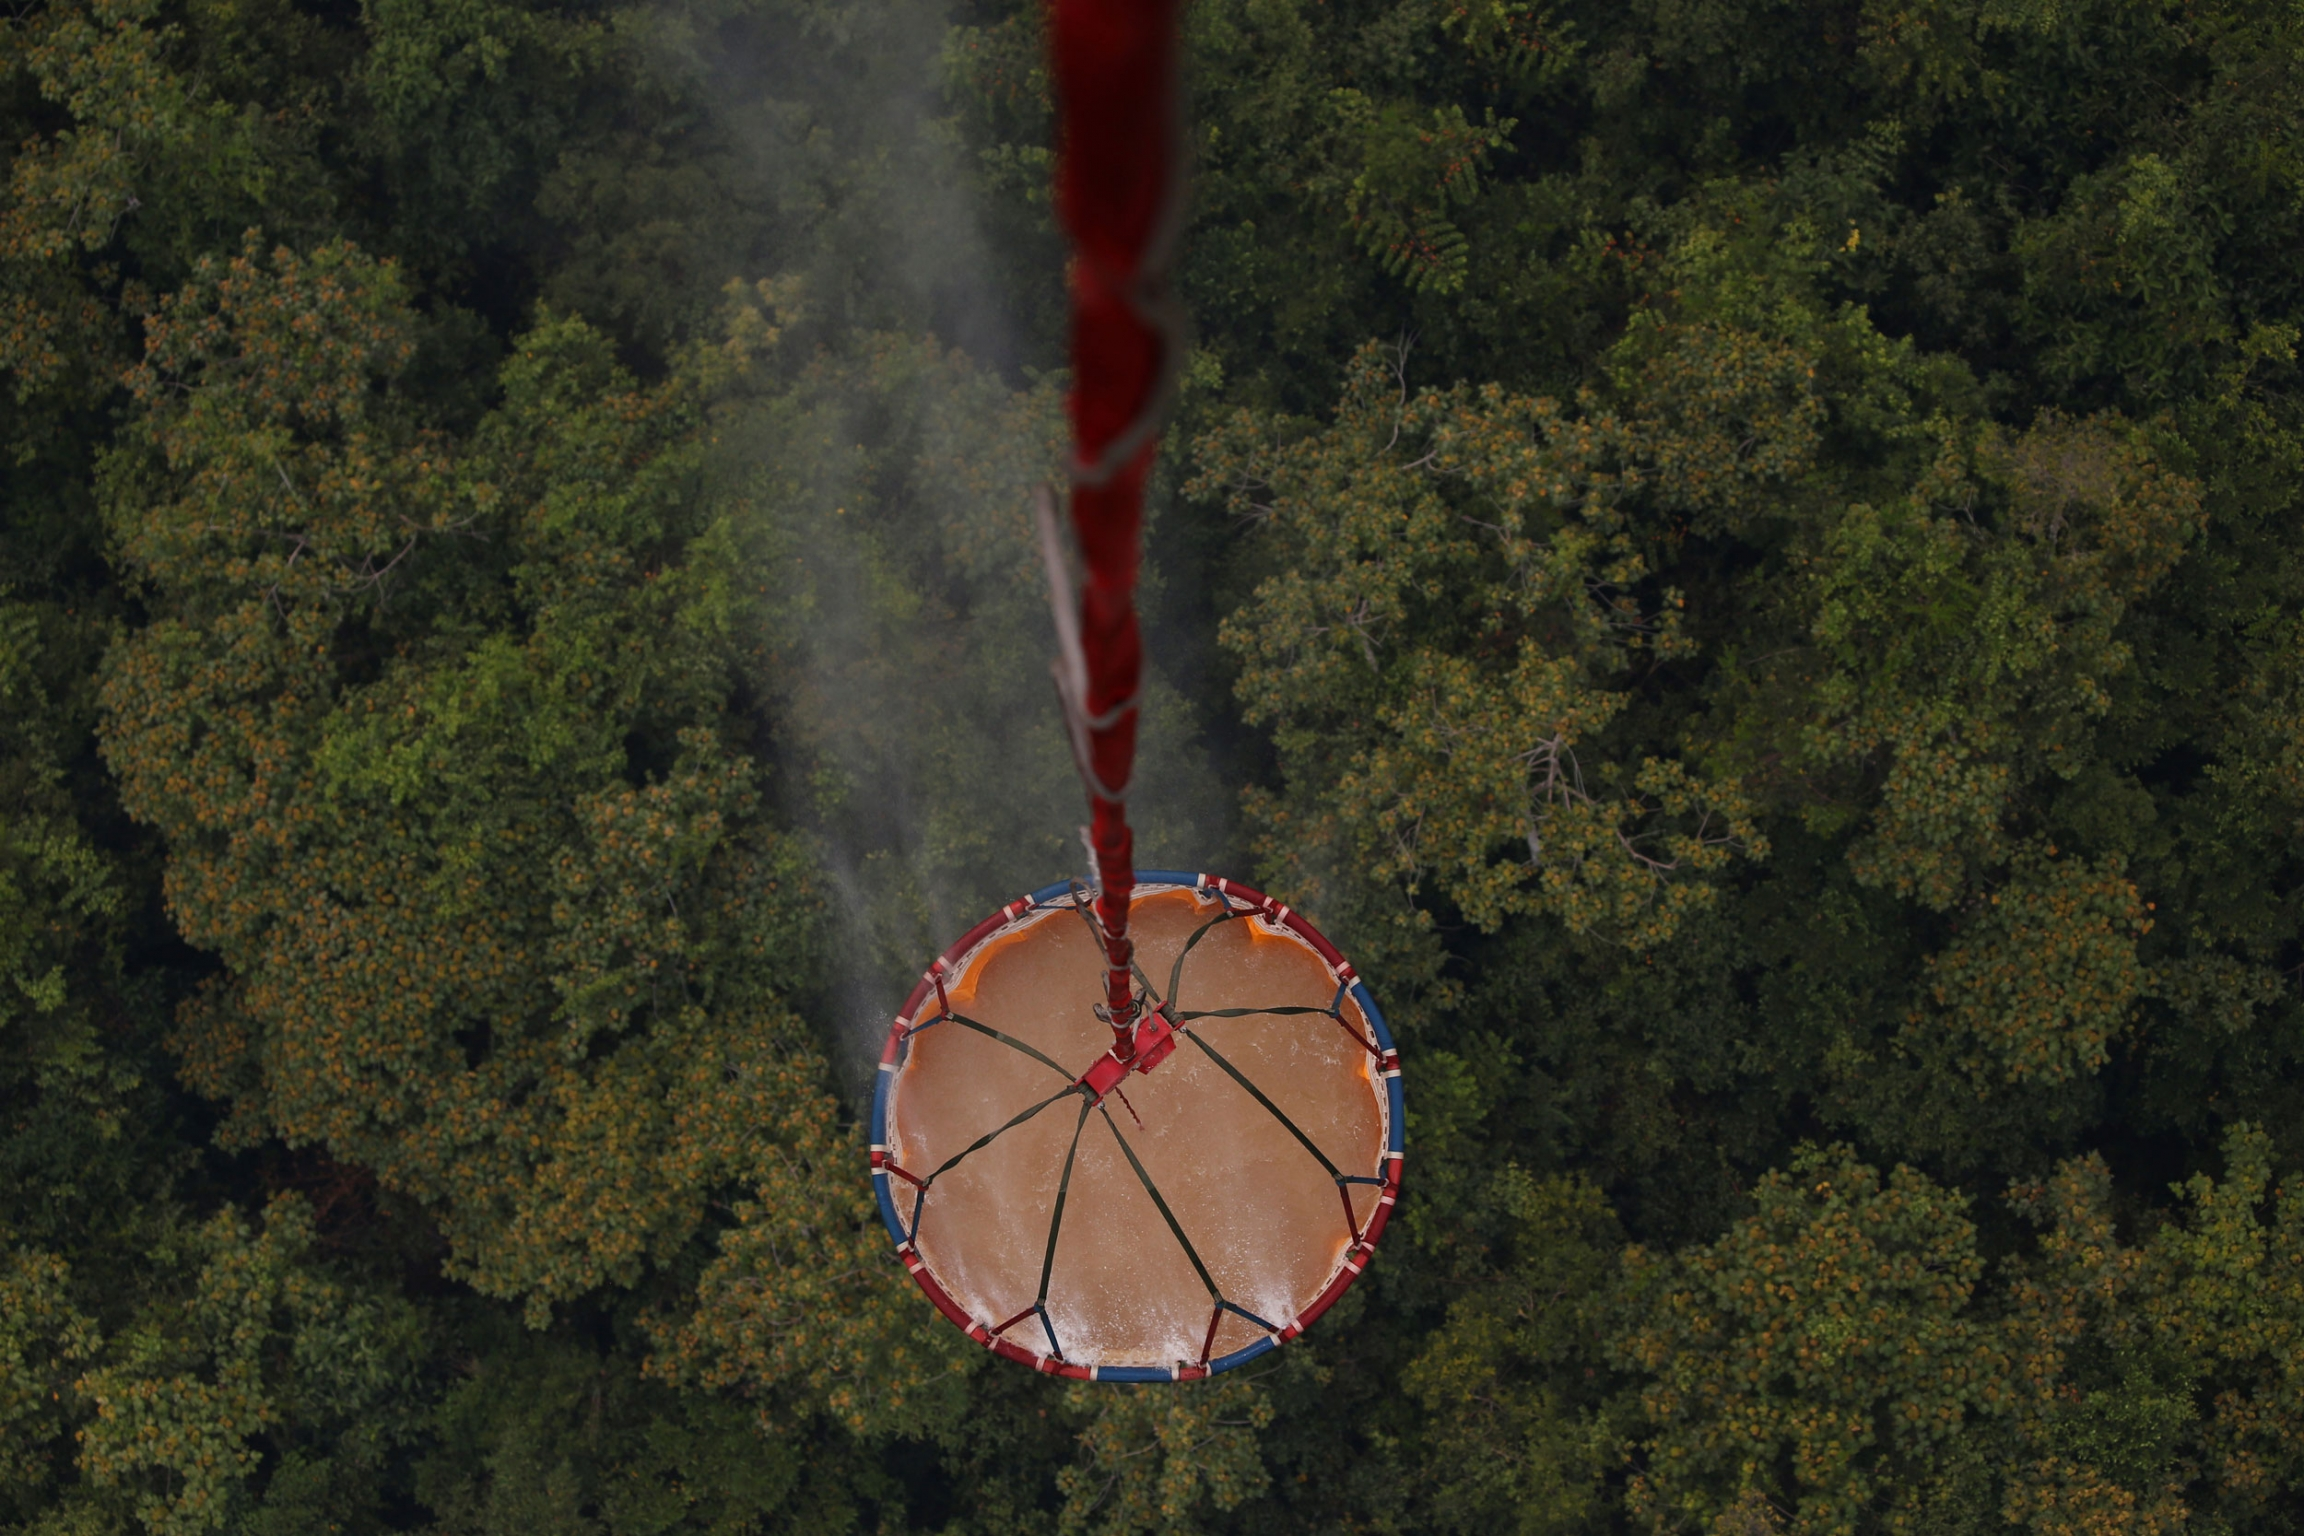 An ariel view is shown looking down at a large container of water with a forest down below.